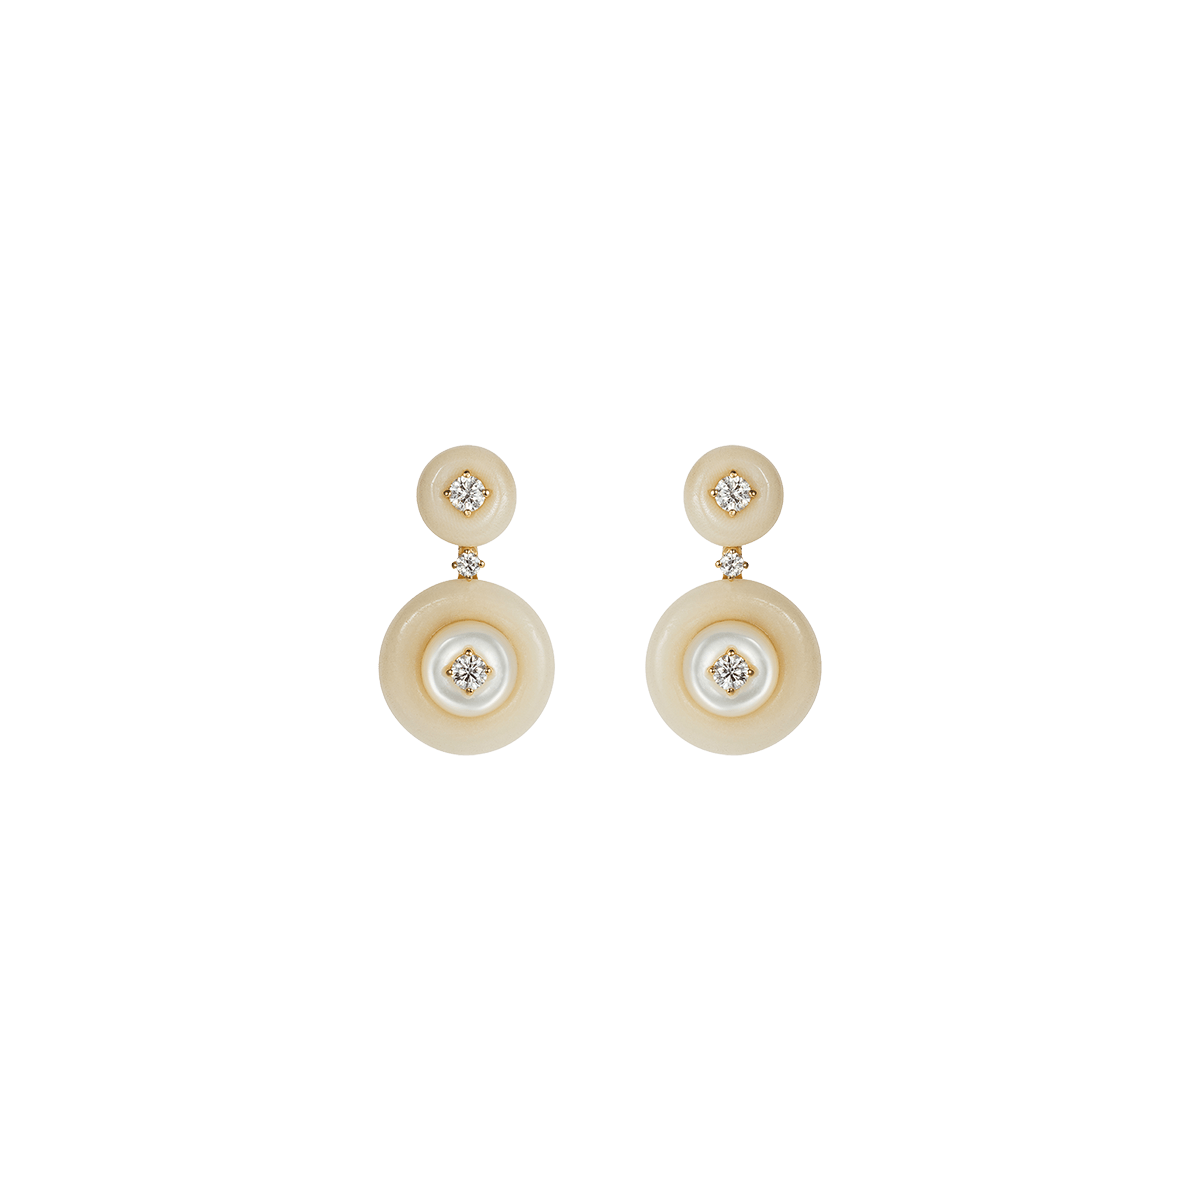 White Mother of Pearl, Tagua, and Diamond Small Signal Earrings